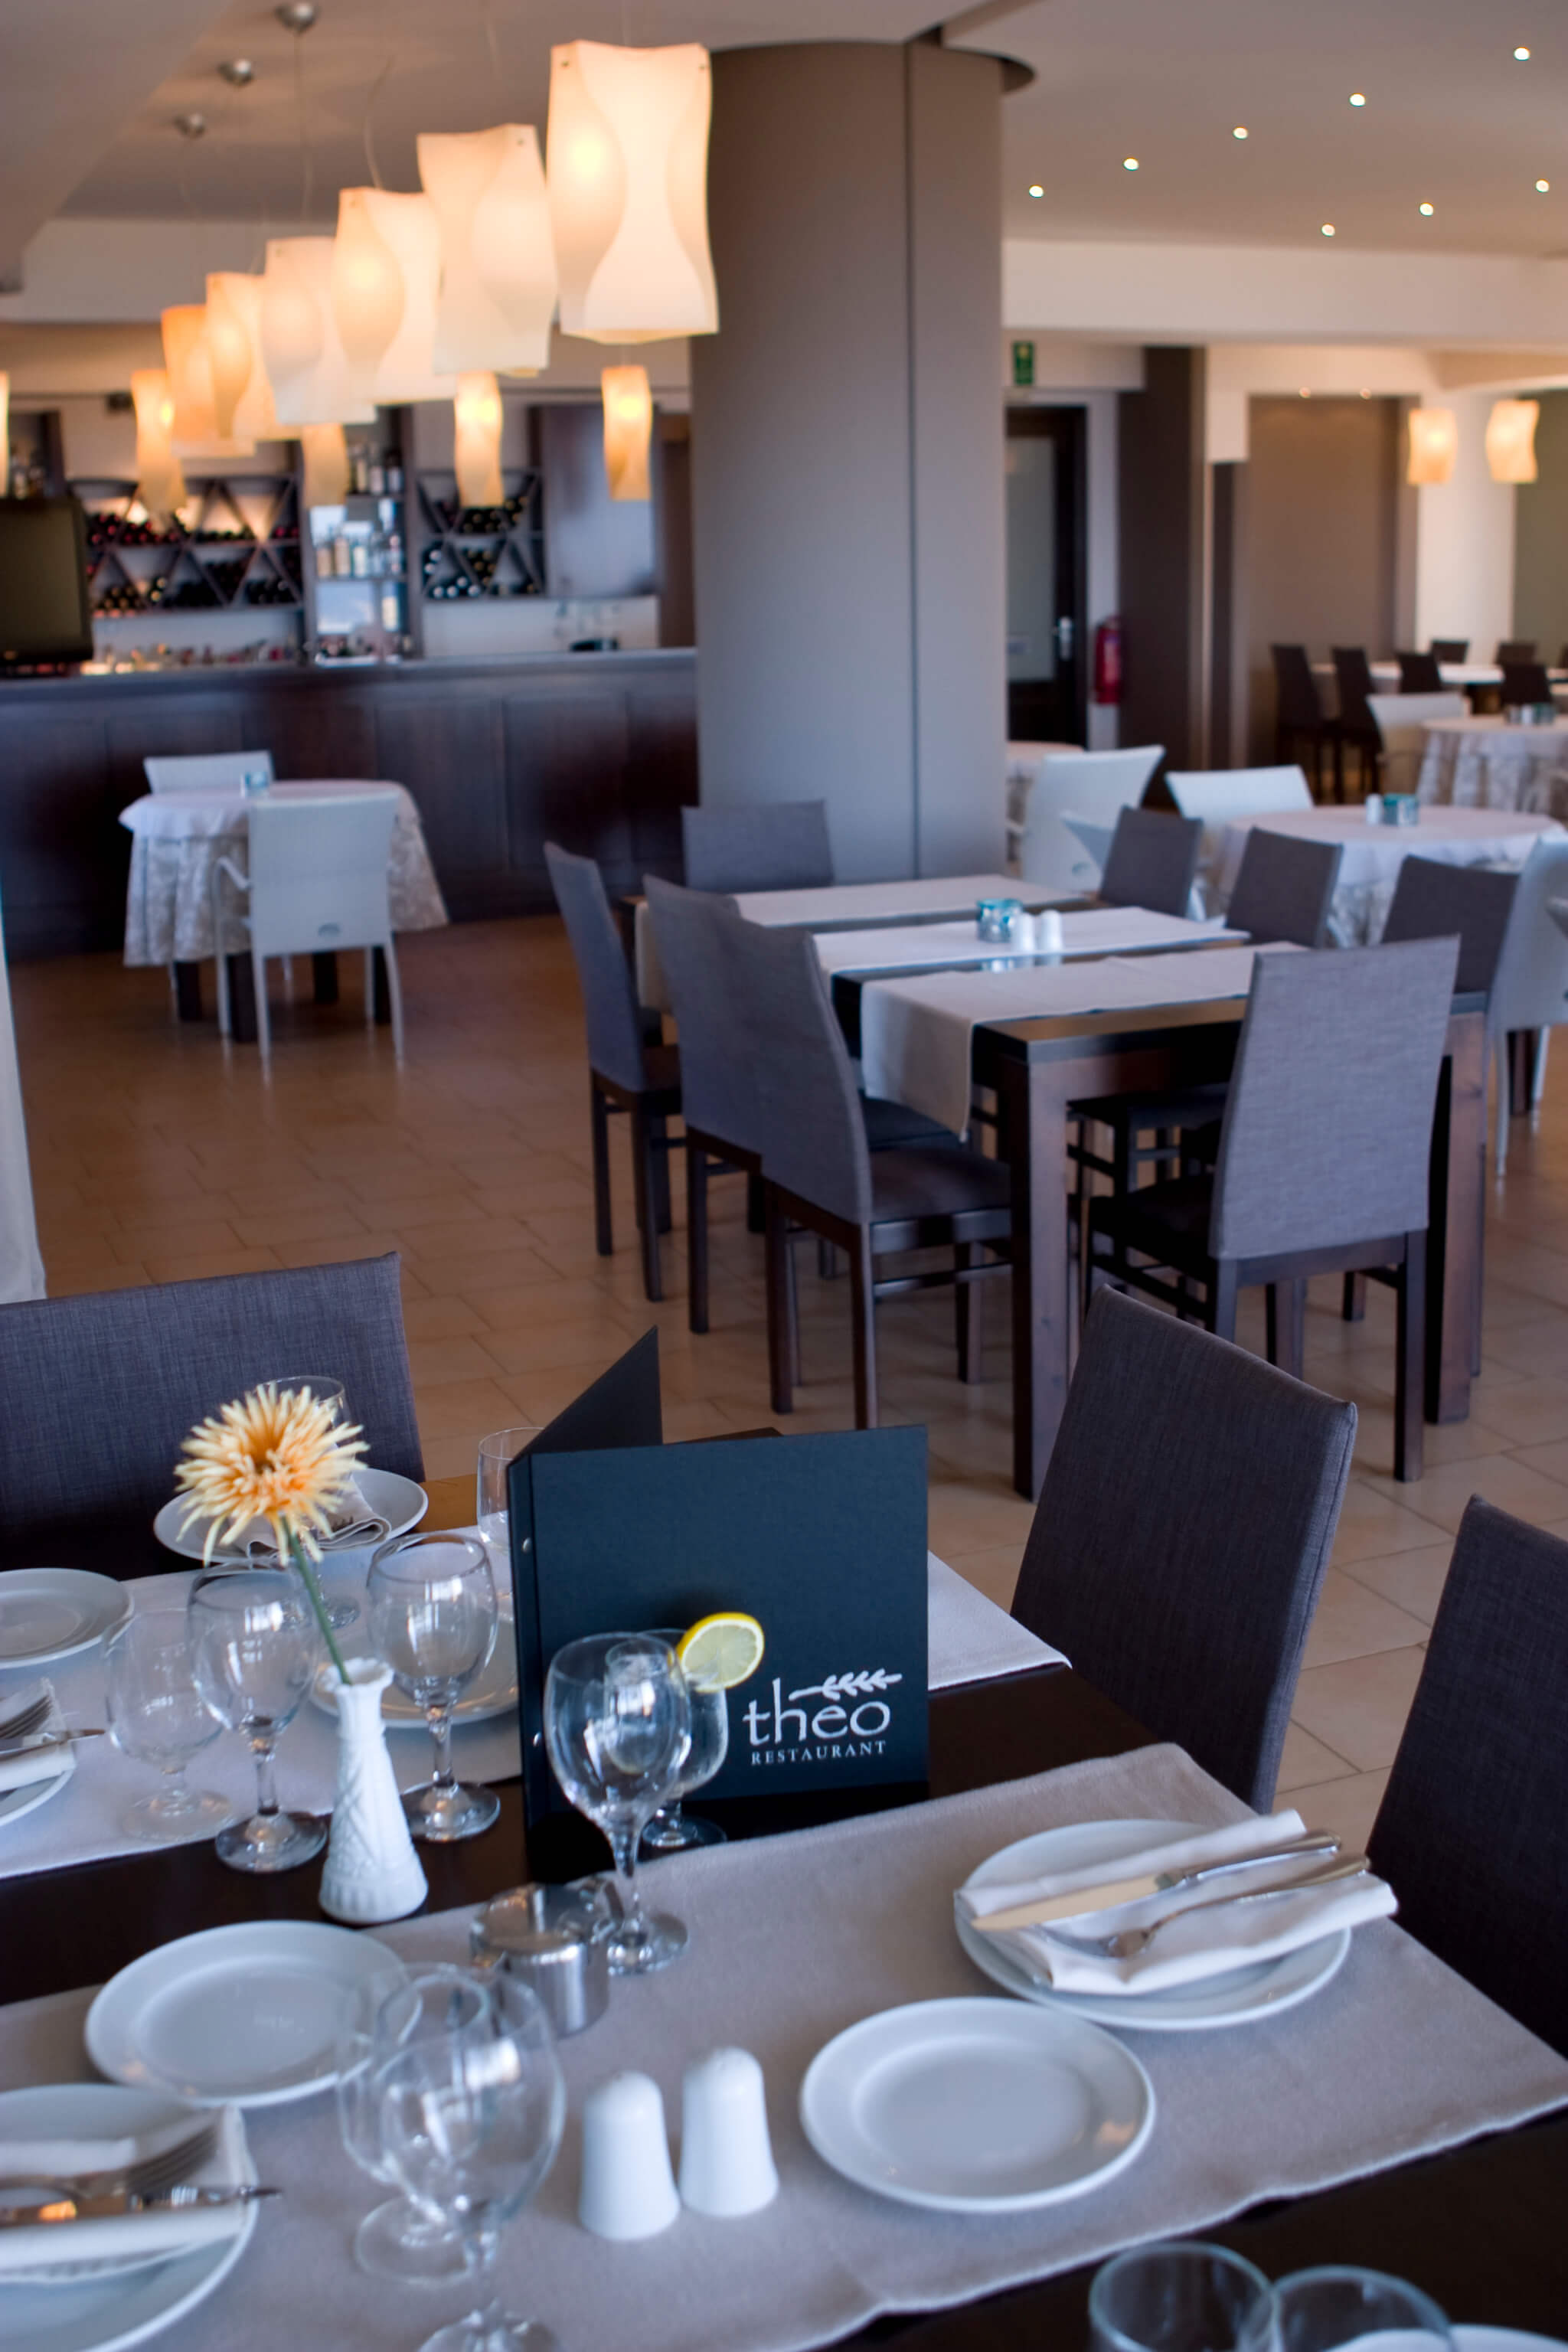 party events for groups theodosi restaurant